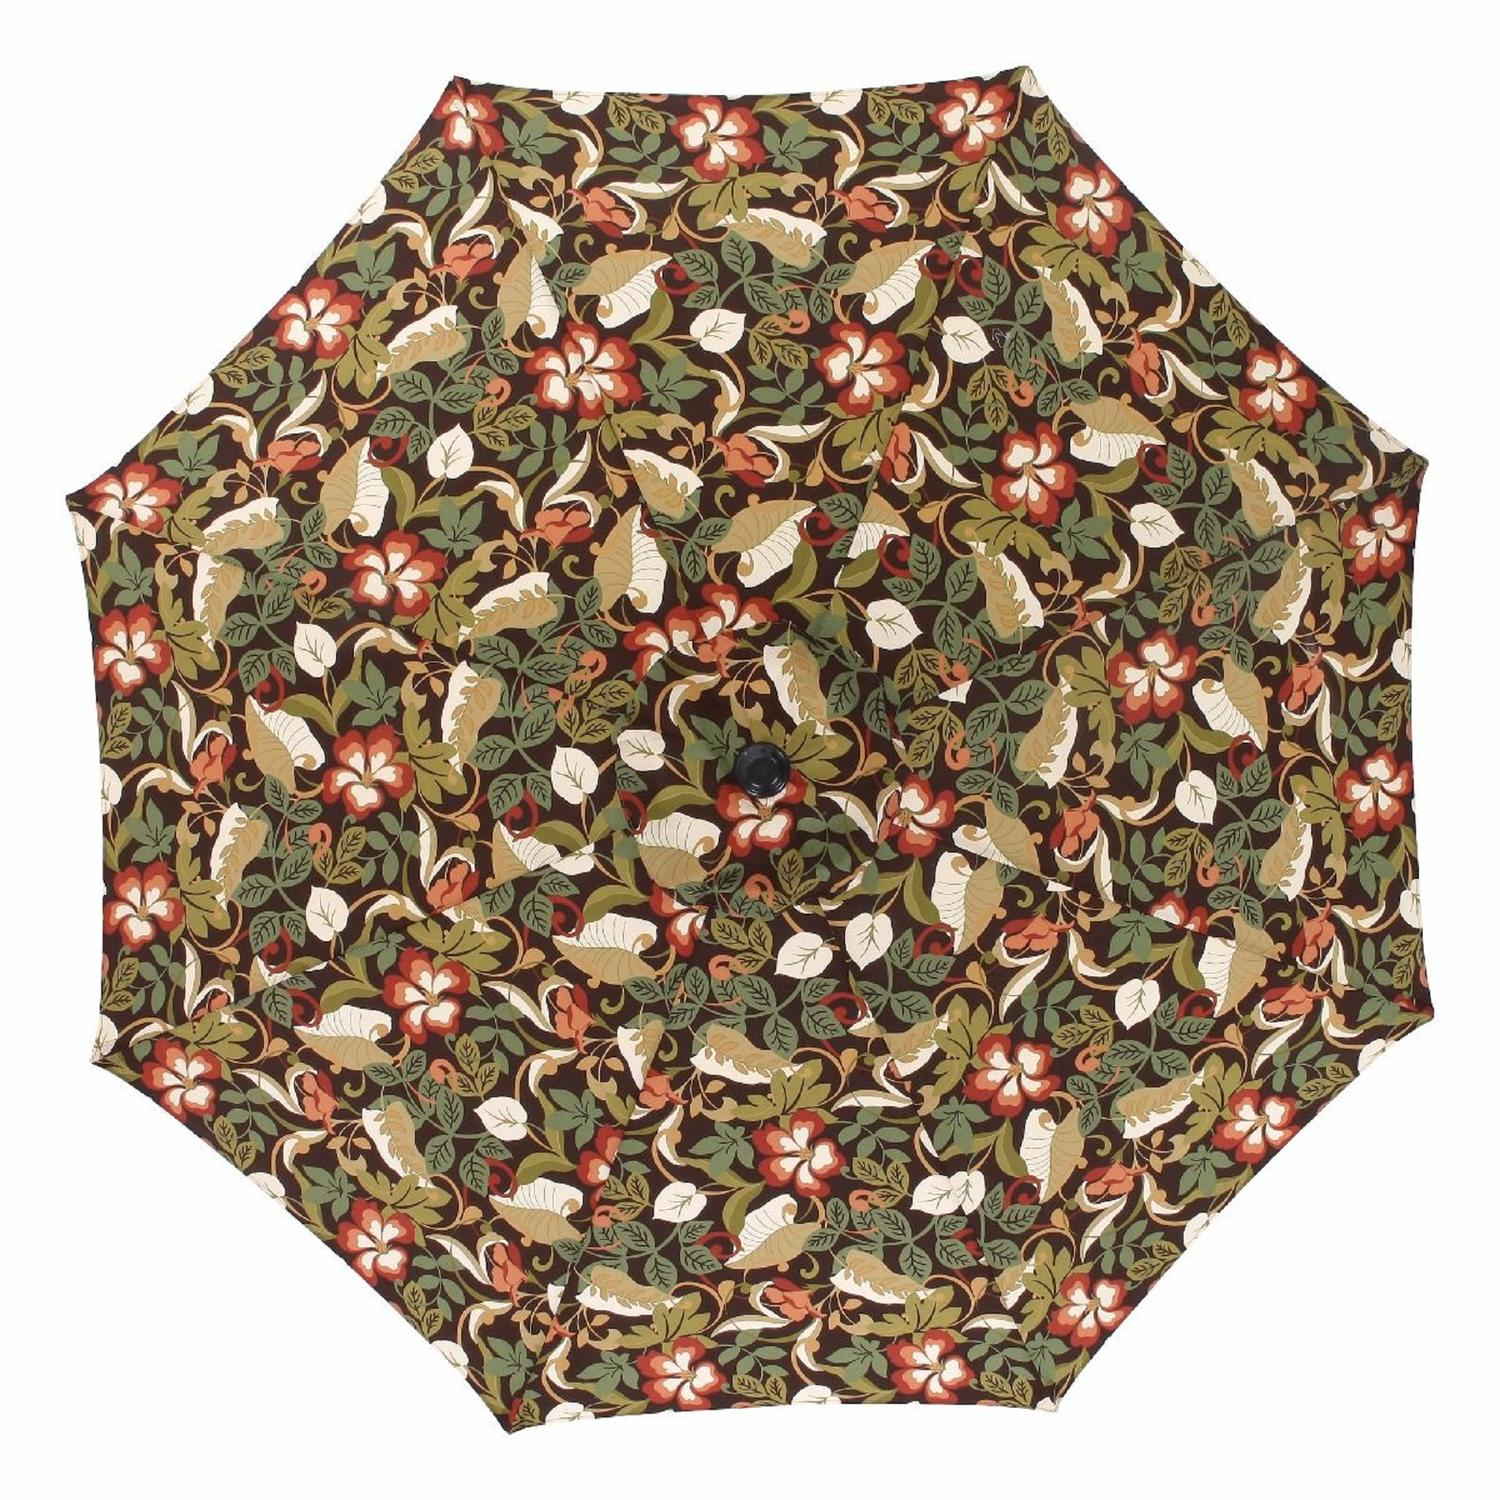 9' Coventry Brown Patio Market Tropical Design Umbrella with Hand Crank and Tilt